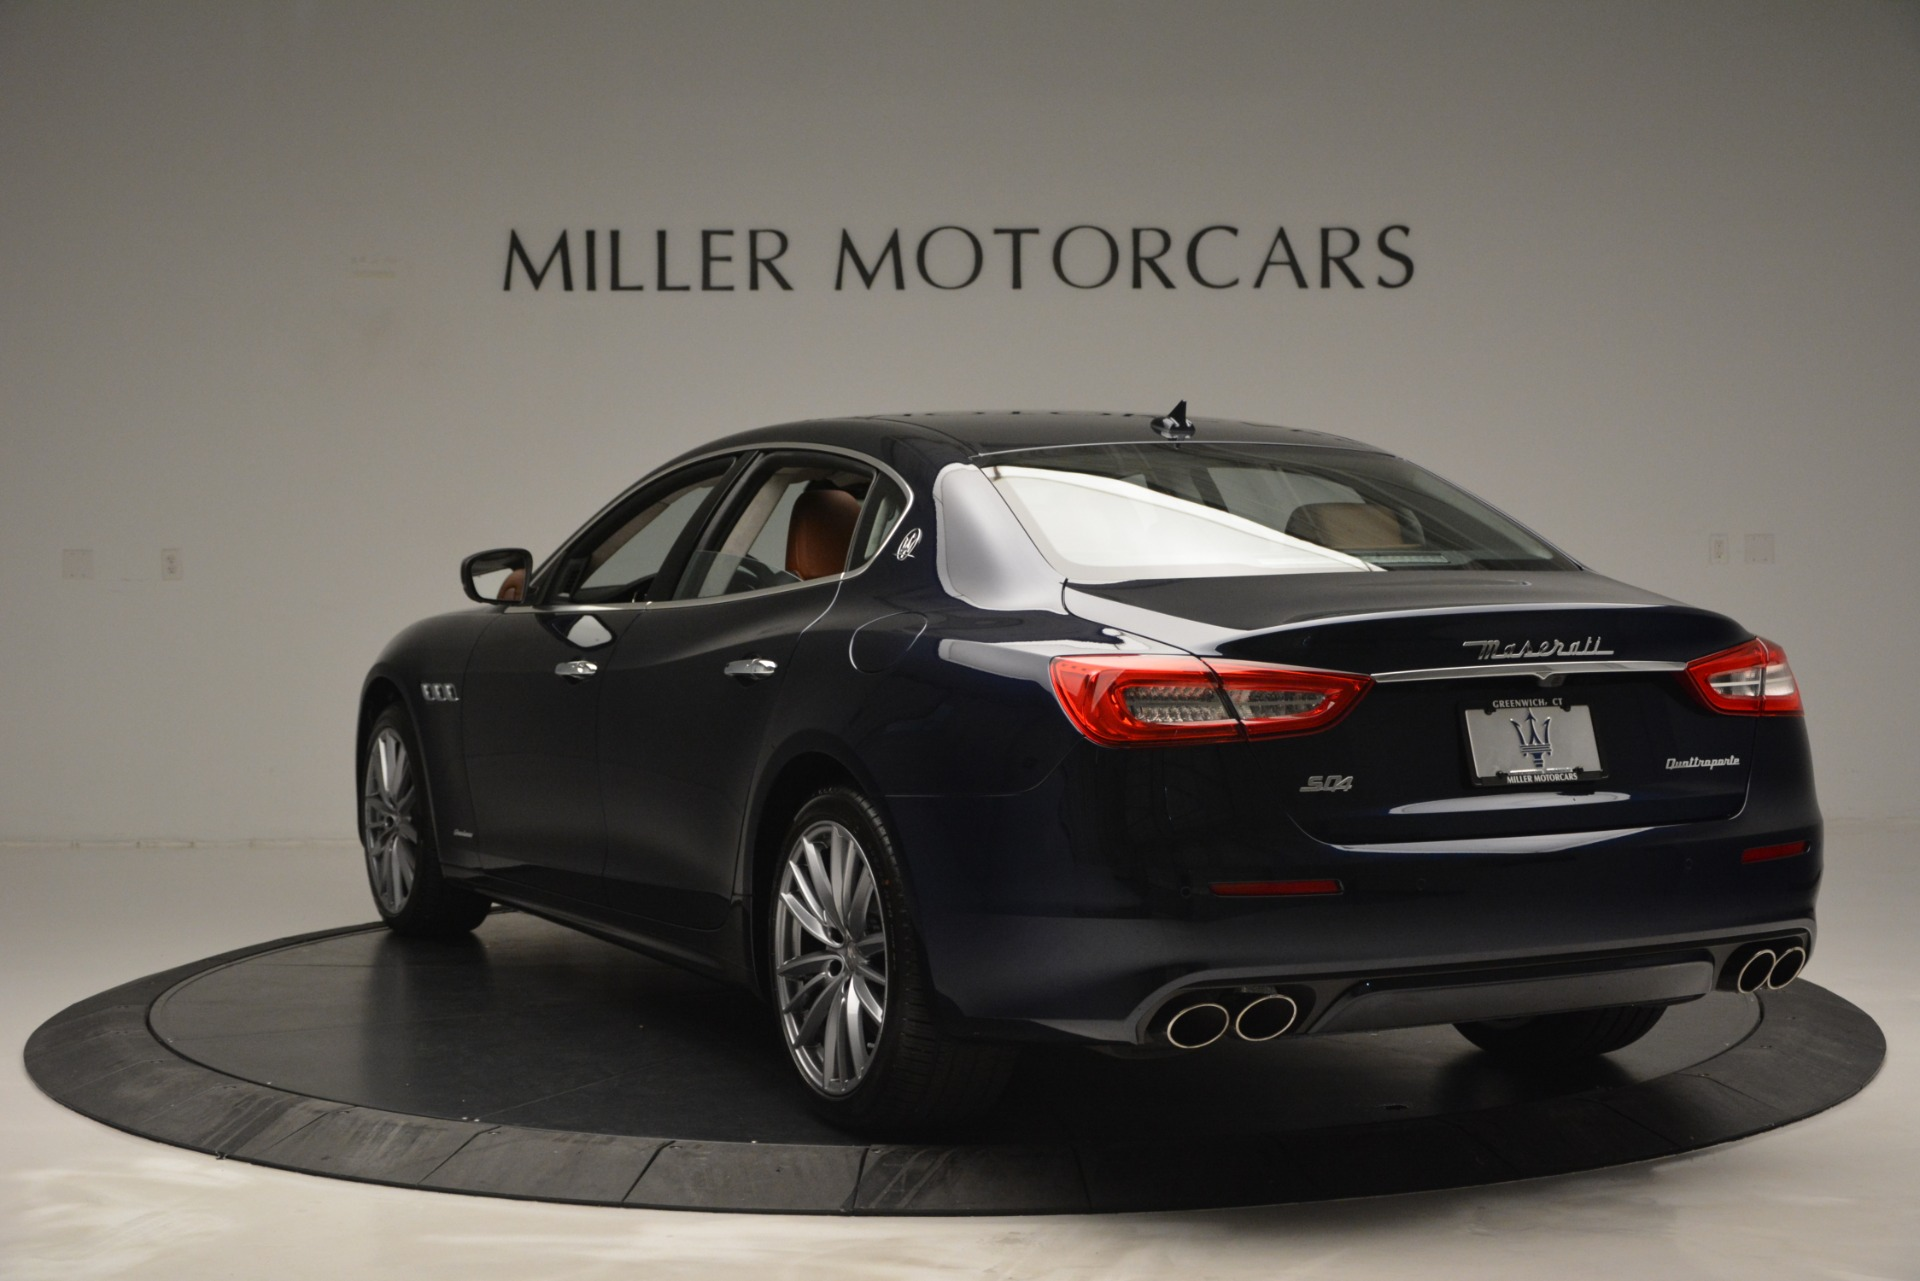 New 2019 Maserati Quattroporte S Q4 GranLusso Edizione Nobile For Sale In Greenwich, CT 2898_p8